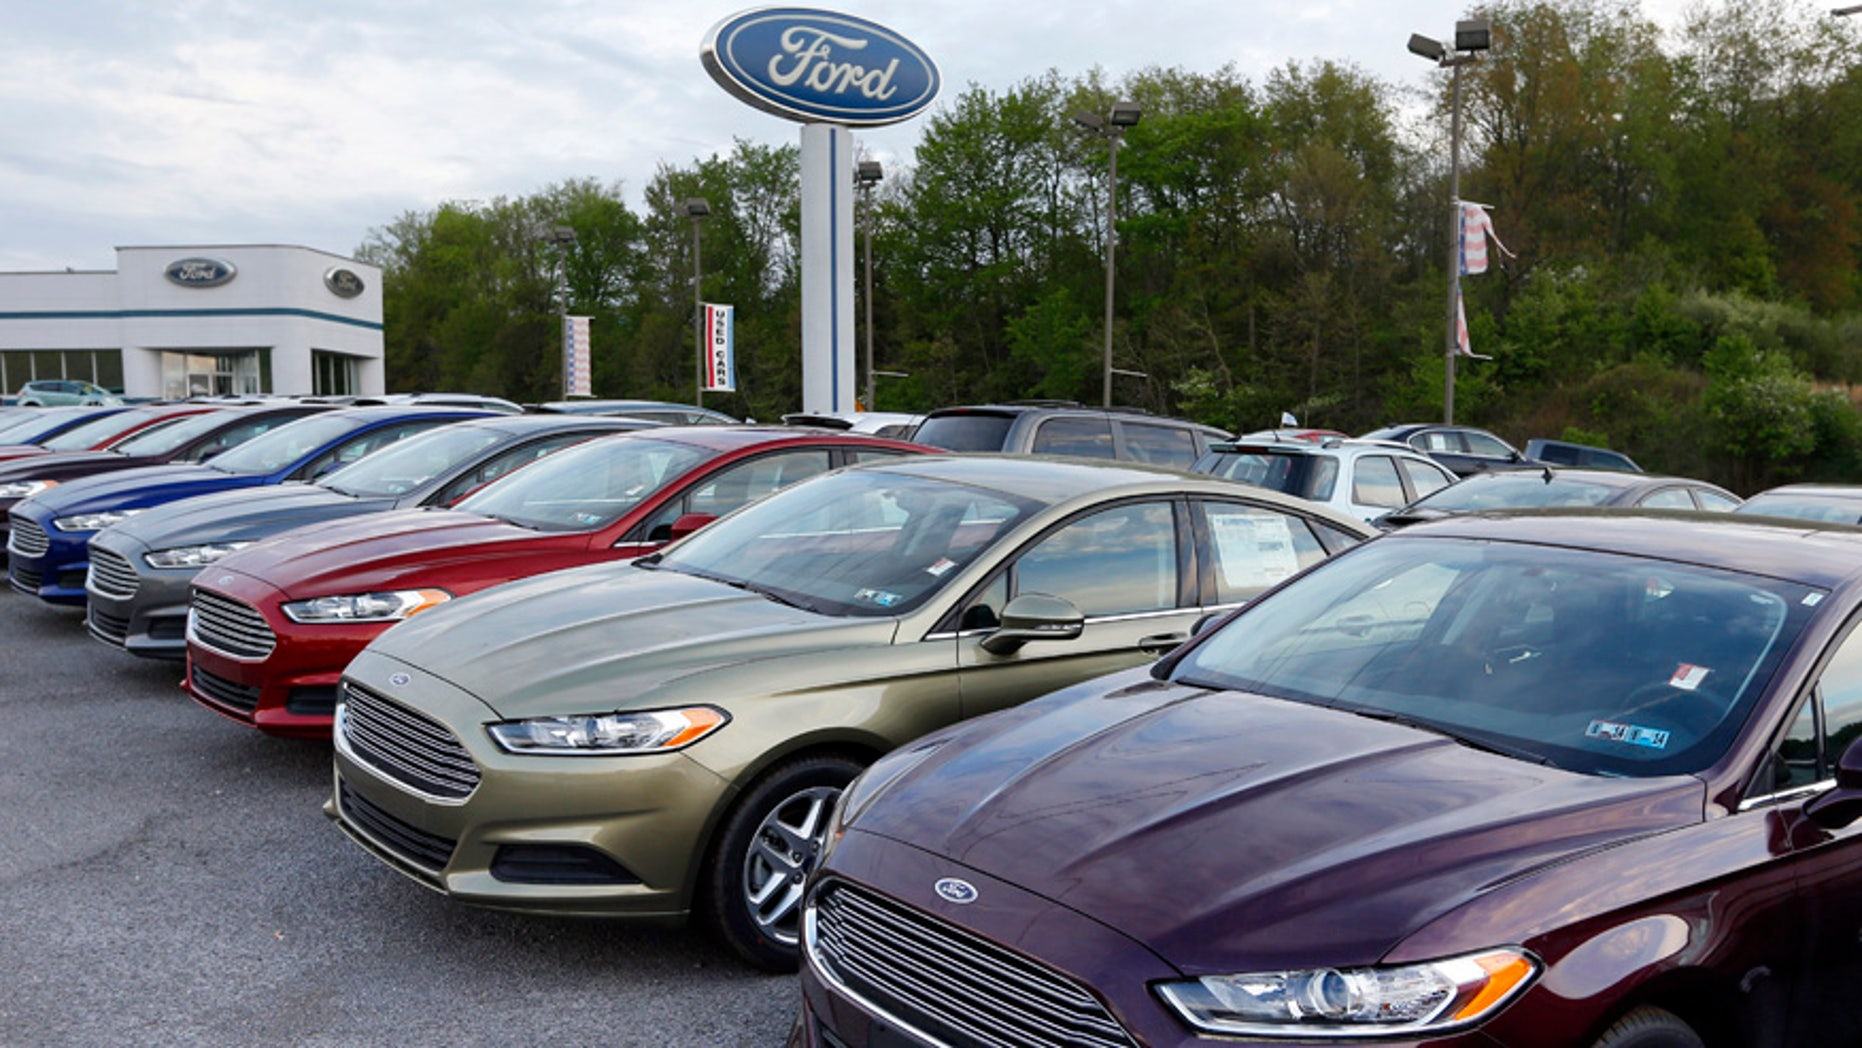 In this Wednesday, May 8, 2013 photo, new 2013 Ford Fusions are seen at an automobile dealer in Zelienople, Pa. U.S. auto sales slowed slightly in June 2014 but still maintained a healthy pace despite a record-setting string of safety recalls at General Motors and a slowdown in truck sales at Ford. Ford's U.S. sales chief John Felice said sales picked up at the end of June as automakers started promoting Independence Day sales. (AP Photo/Keith Srakocic)